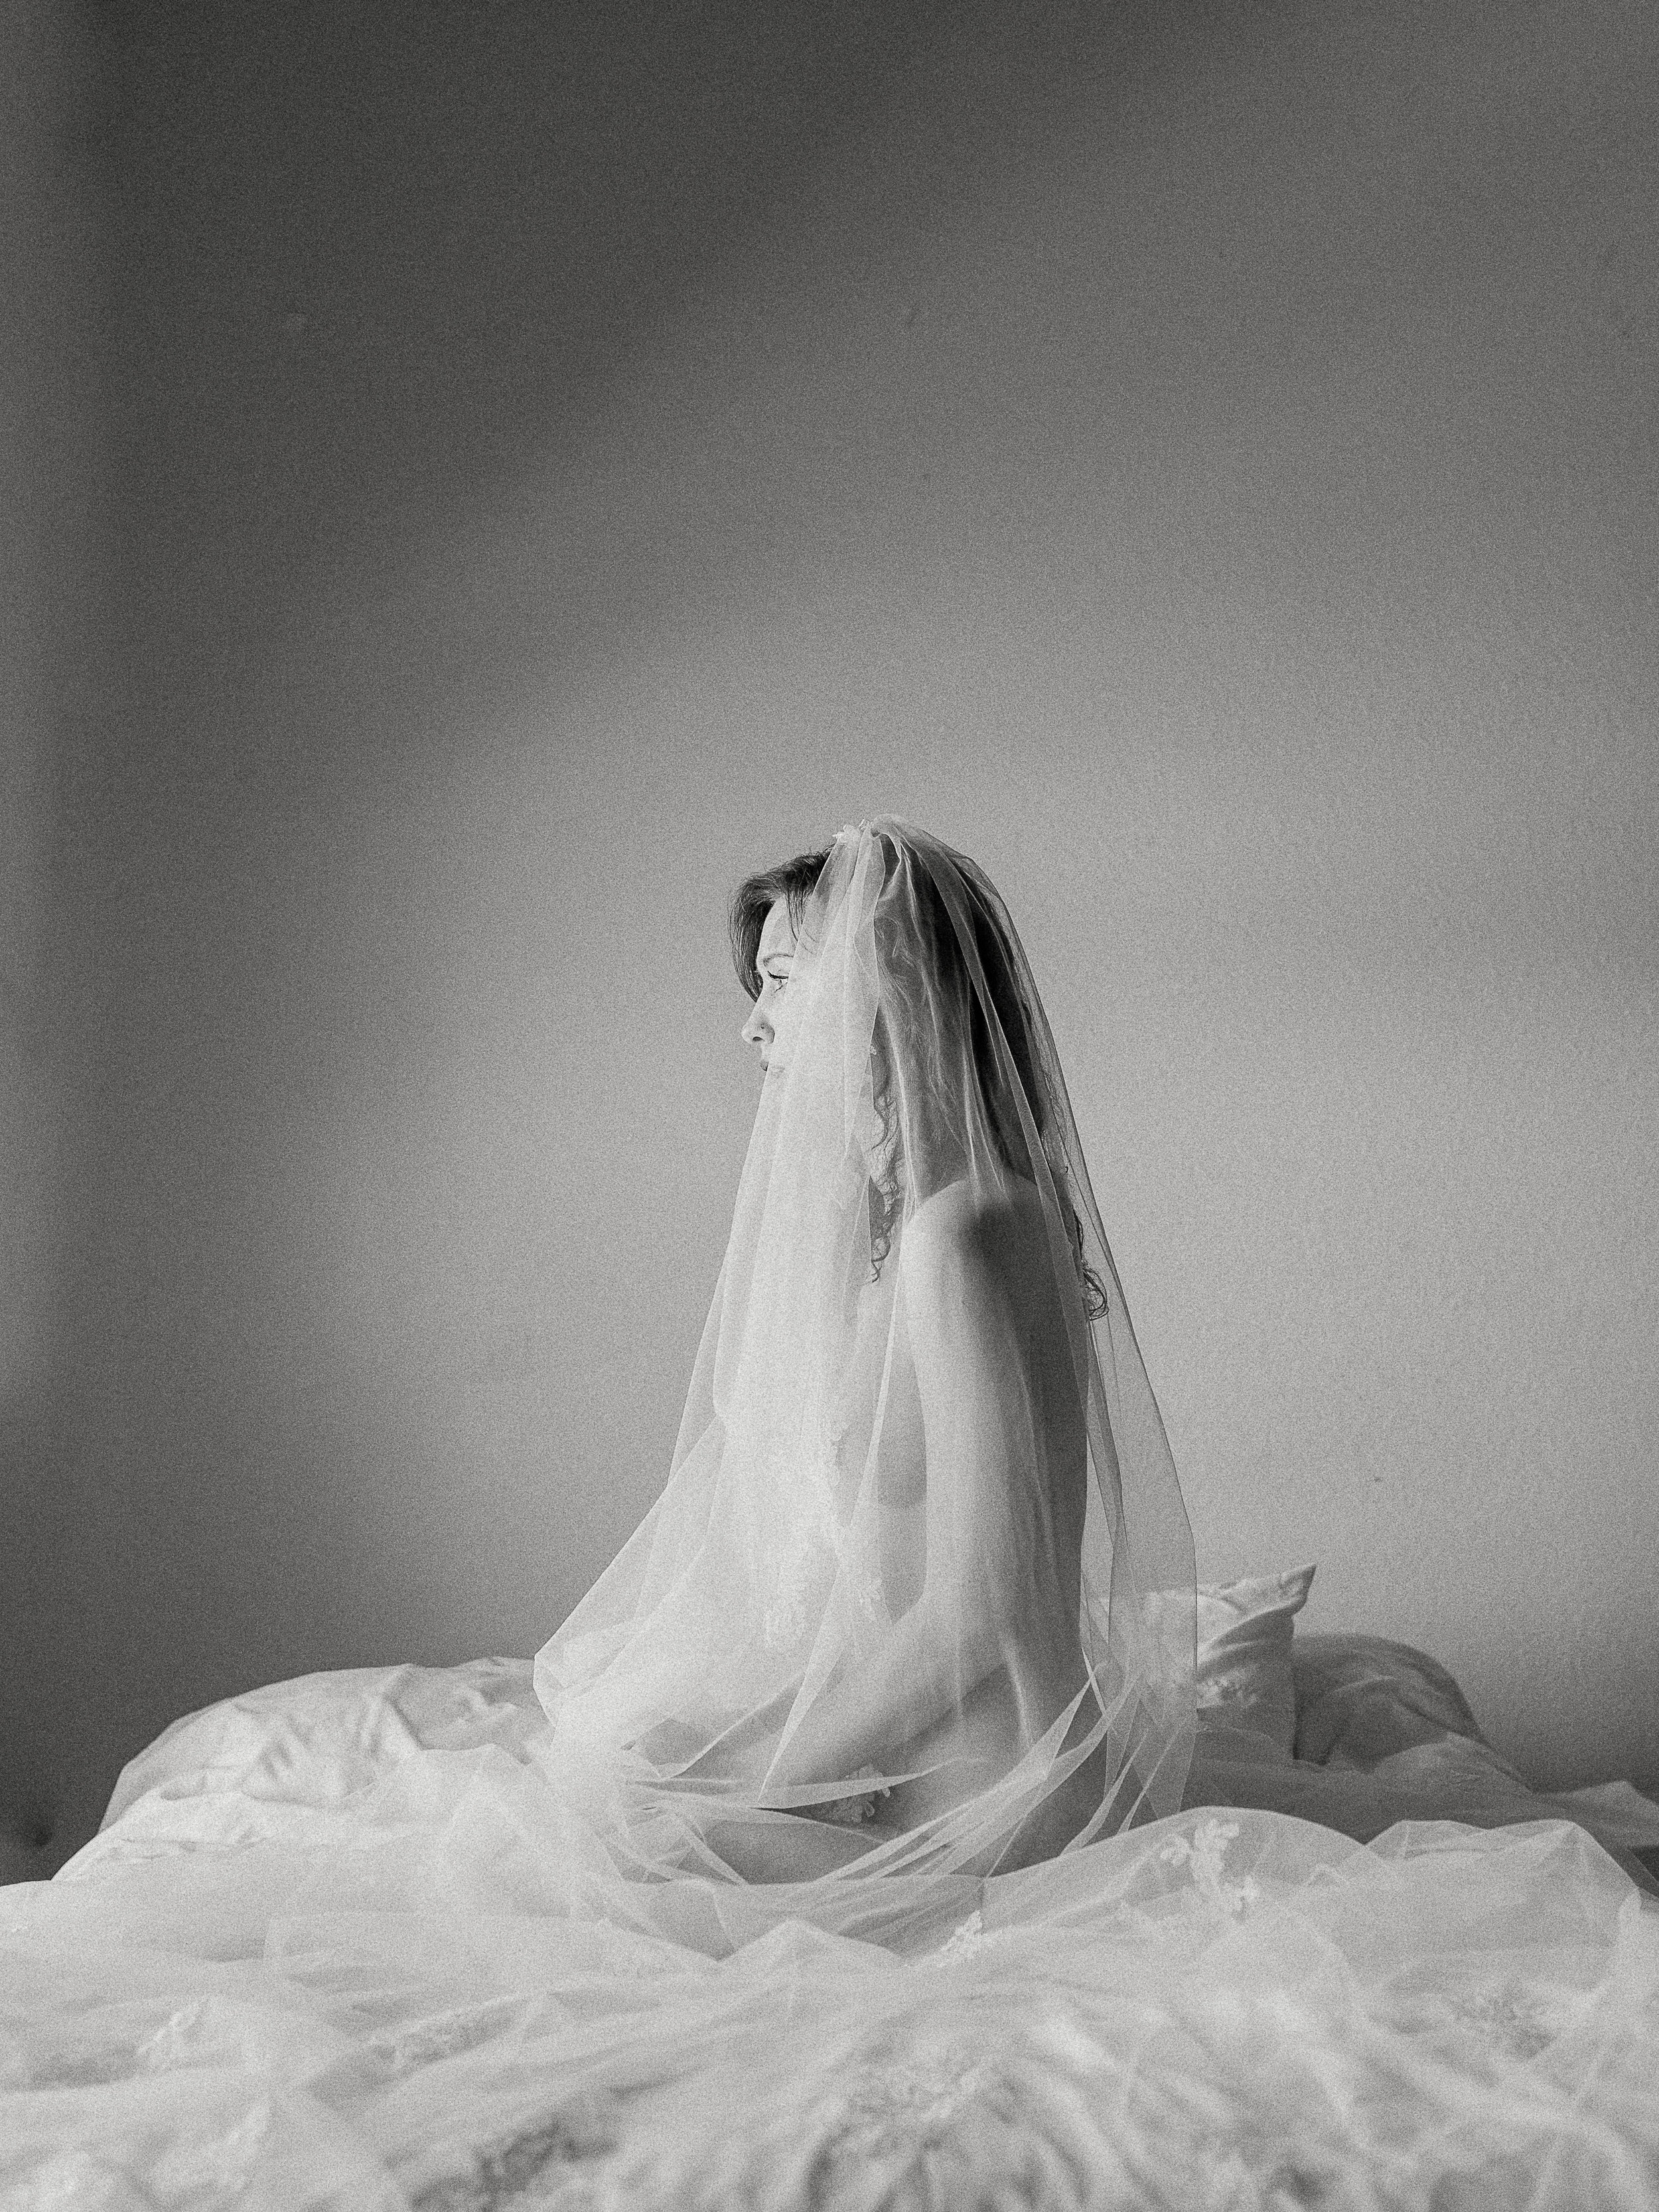 Bridal boudoir - 45 Minutes   Shot on Film and Digital There is beauty in being strong and independent. That doesn't have to change with marriage. These sessions celebrate you, before committing to someone else. Do it as a gift for your spouse, but more importantly, do it for yourself!